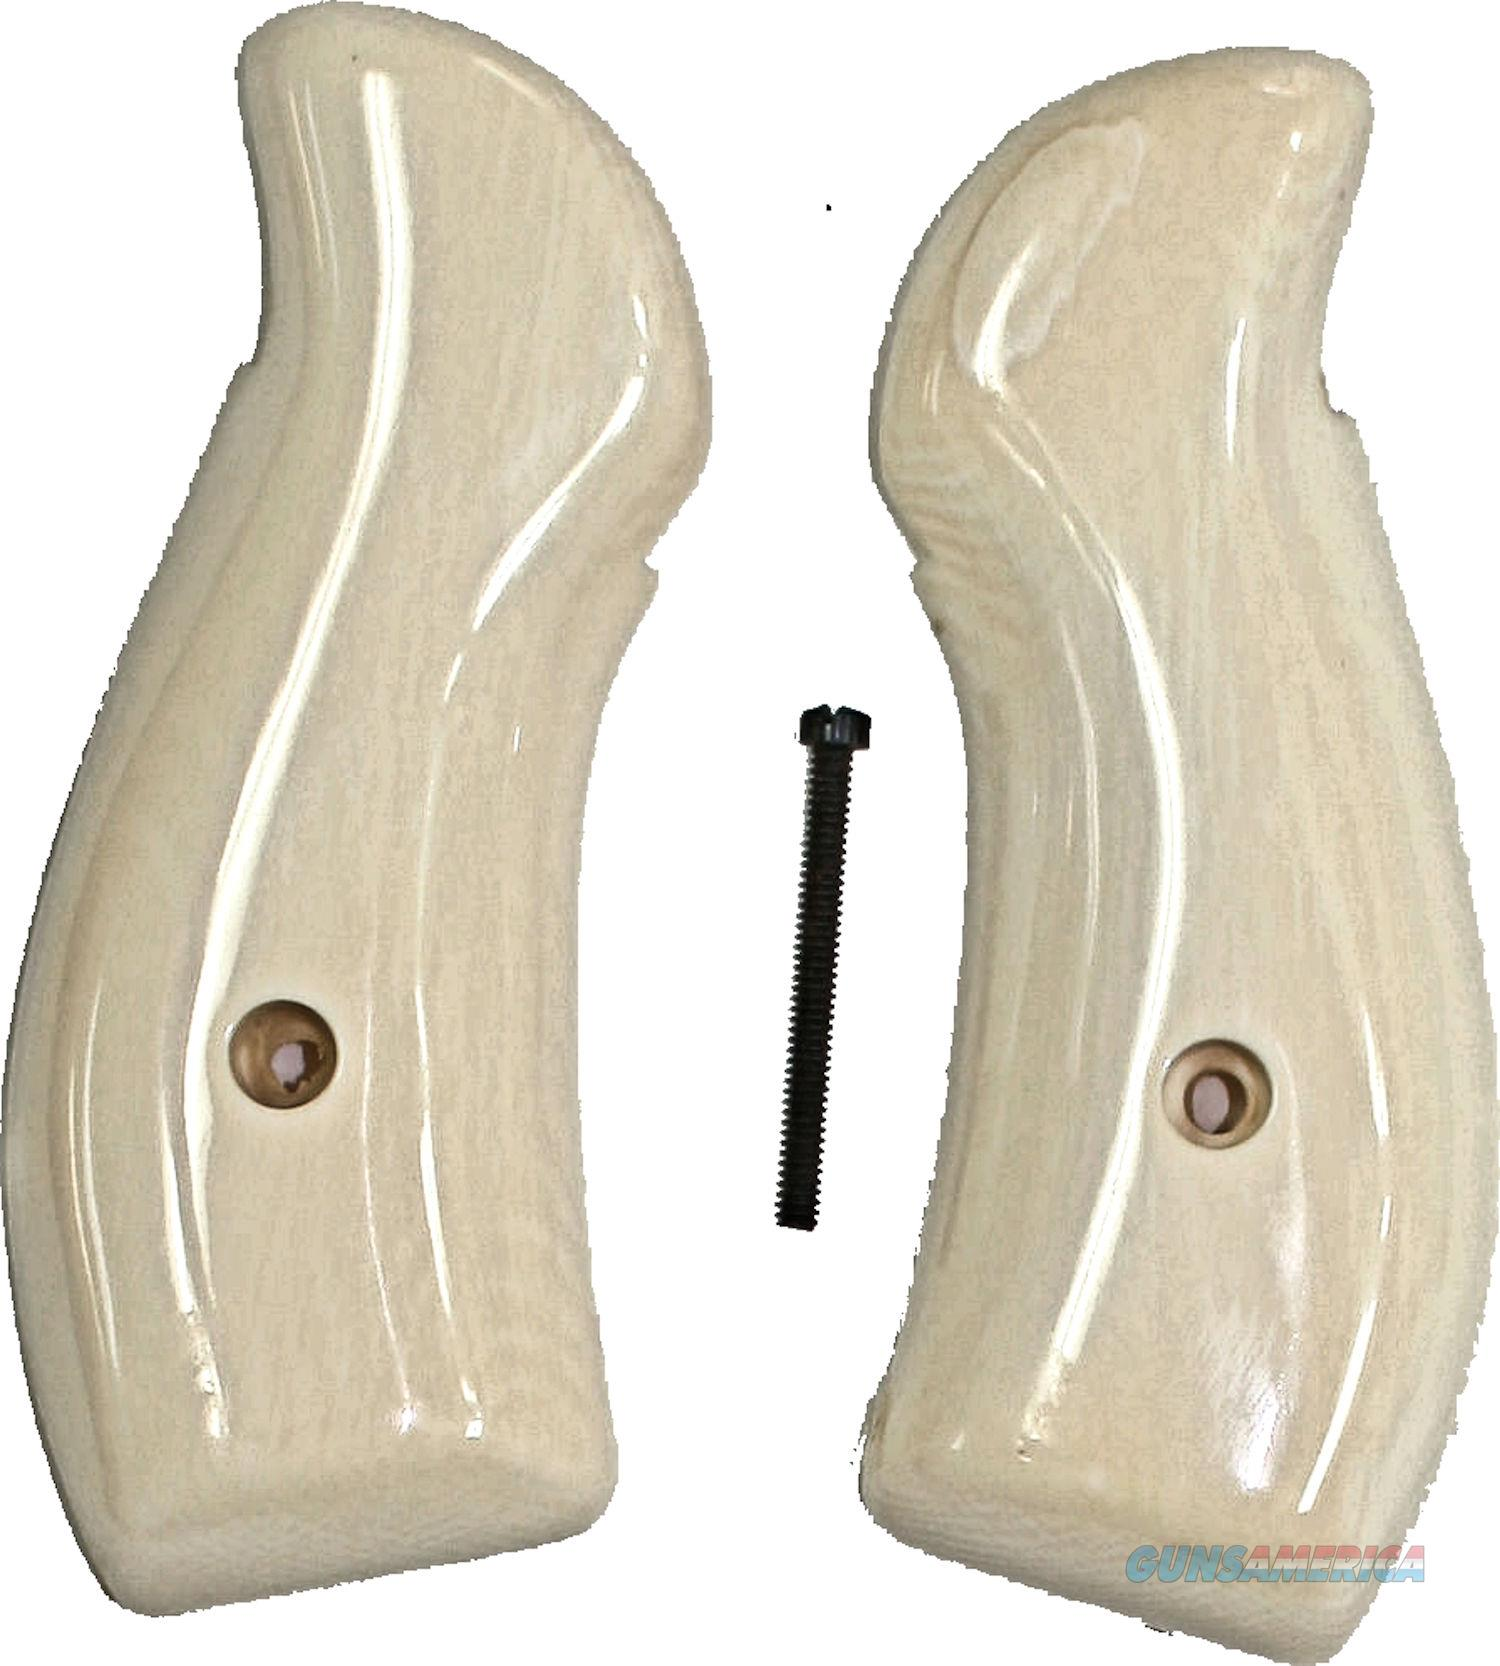 Smith & Wesson N Frame Real Ivory Grips  Non-Guns > Gun Parts > Grips > Smith & Wesson